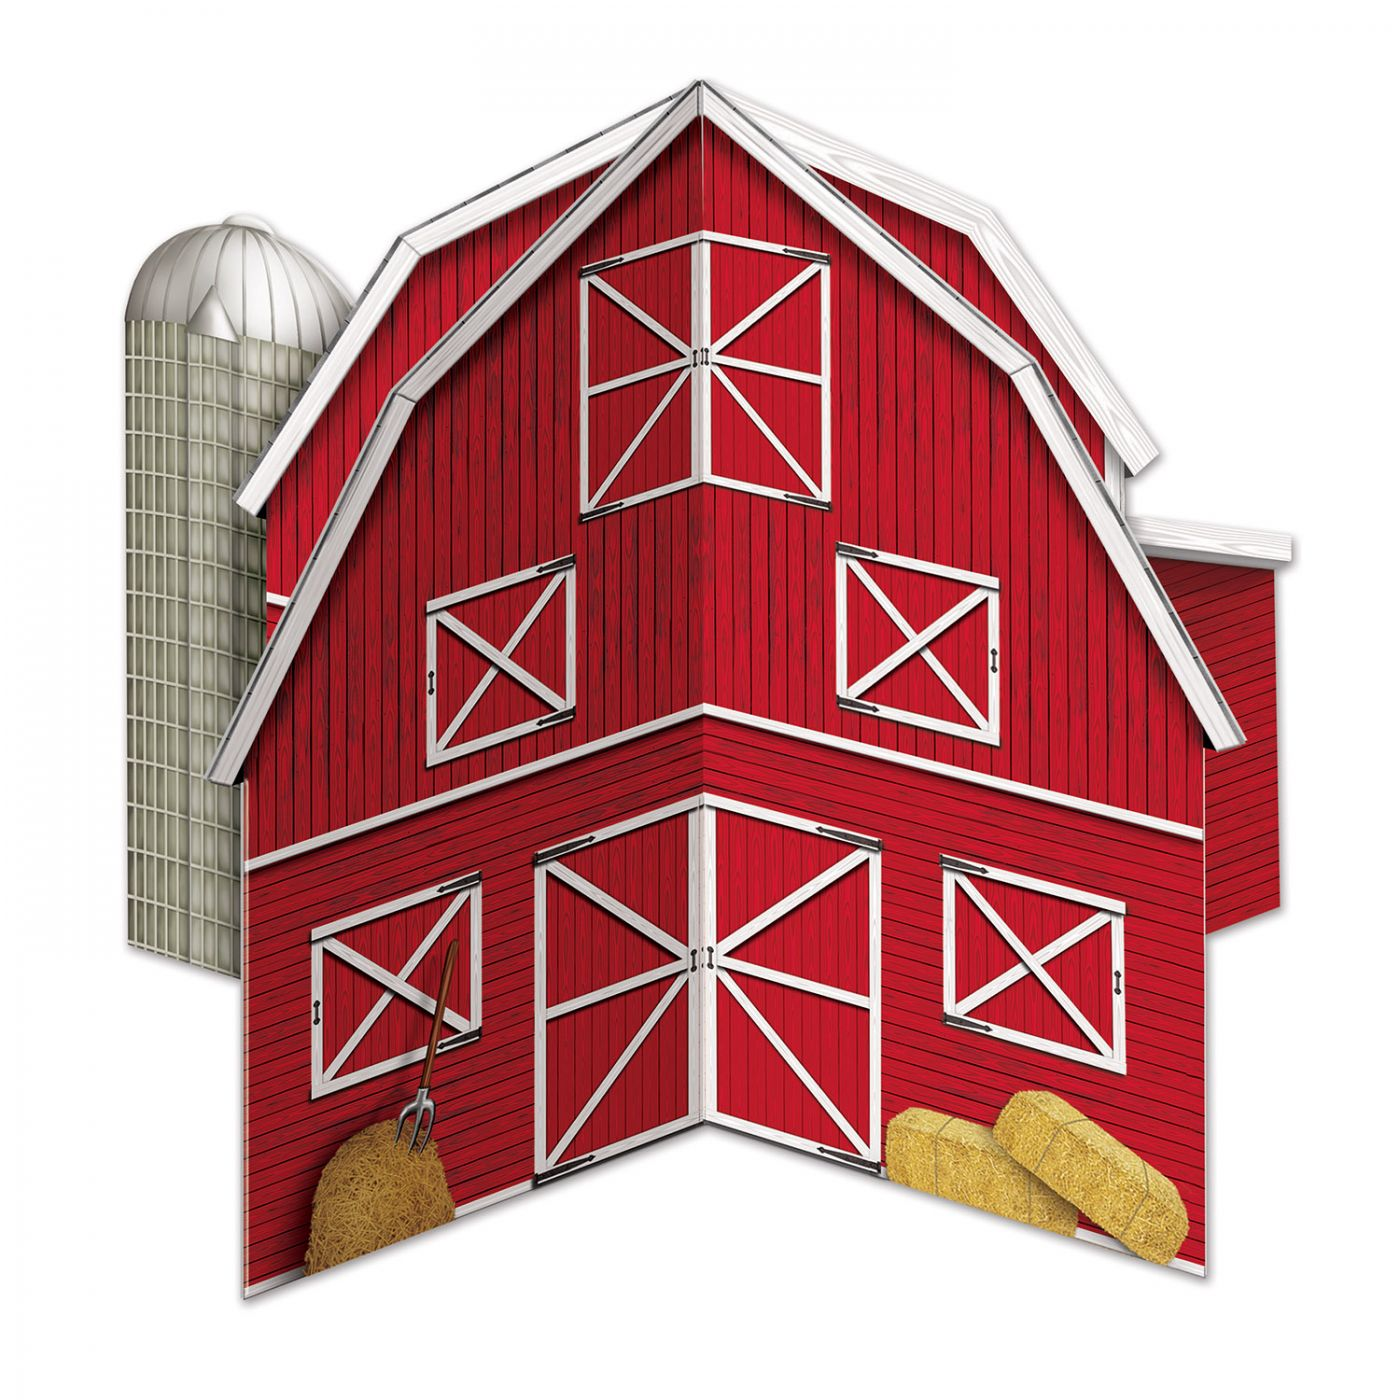 3-D Barn Centerpiece image